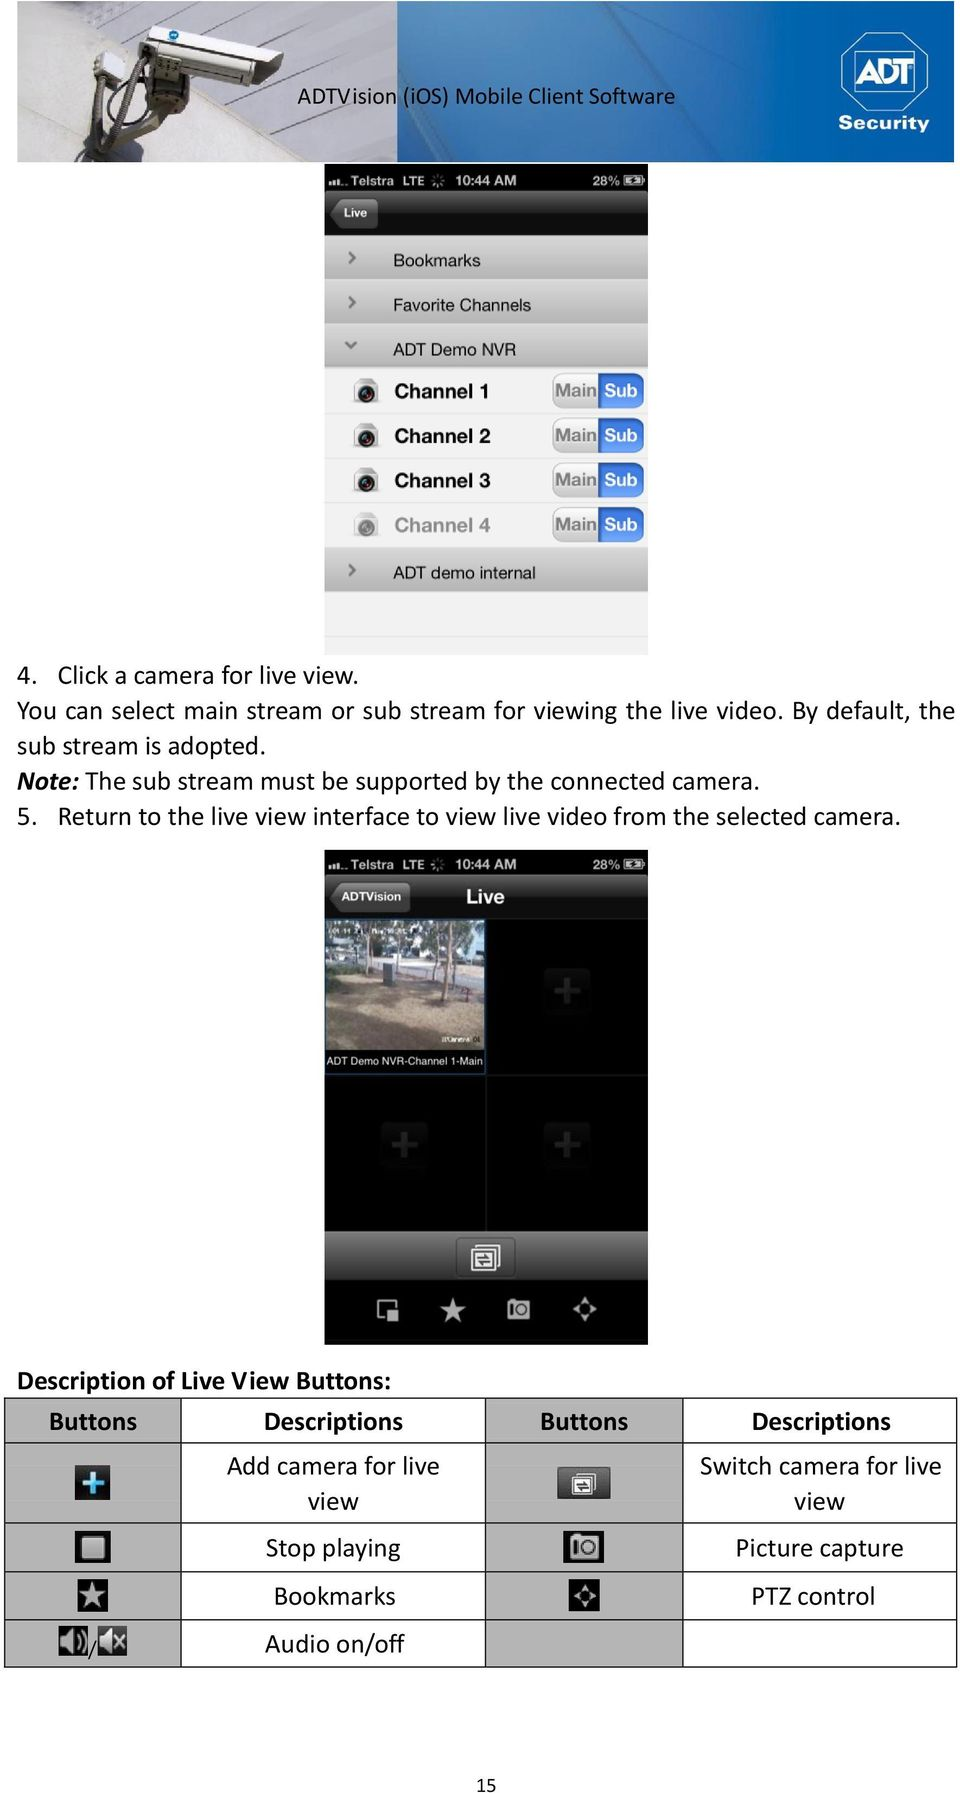 Return to the live view interface to view live video from the selected camera.